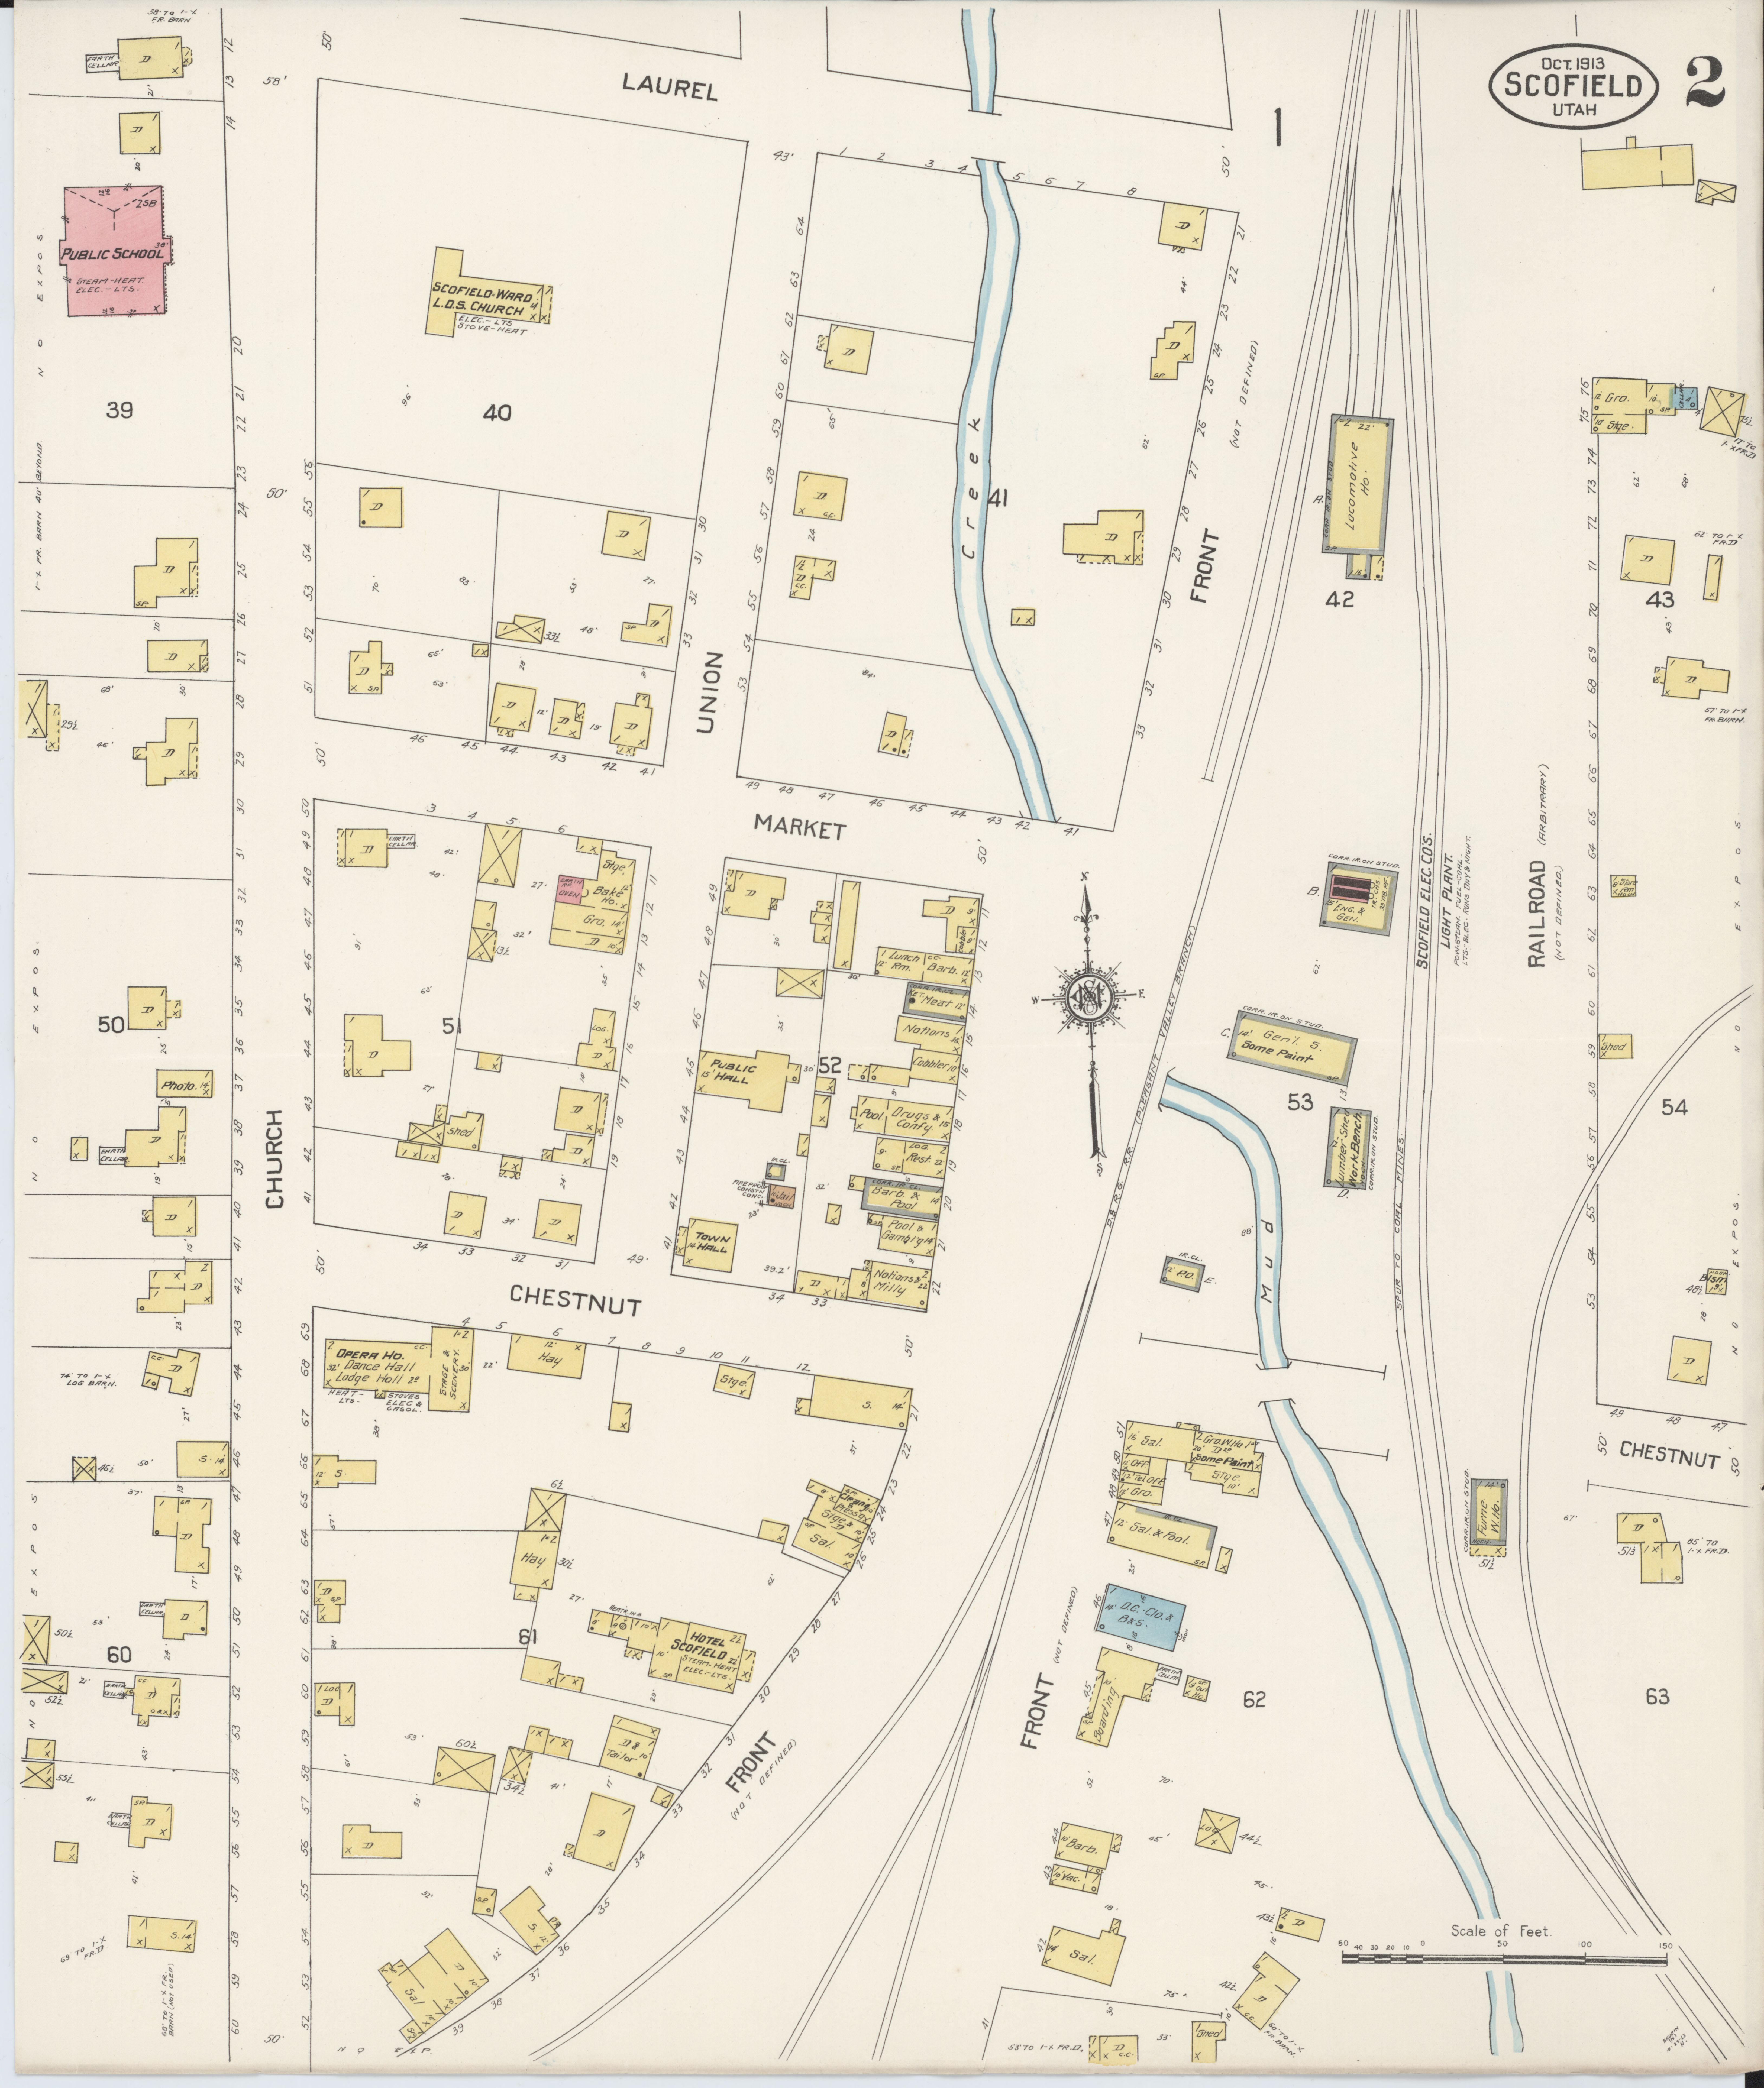 County Line 2 Fire Map.File Sanborn Fire Insurance Map From Scofield Carbon County Utah